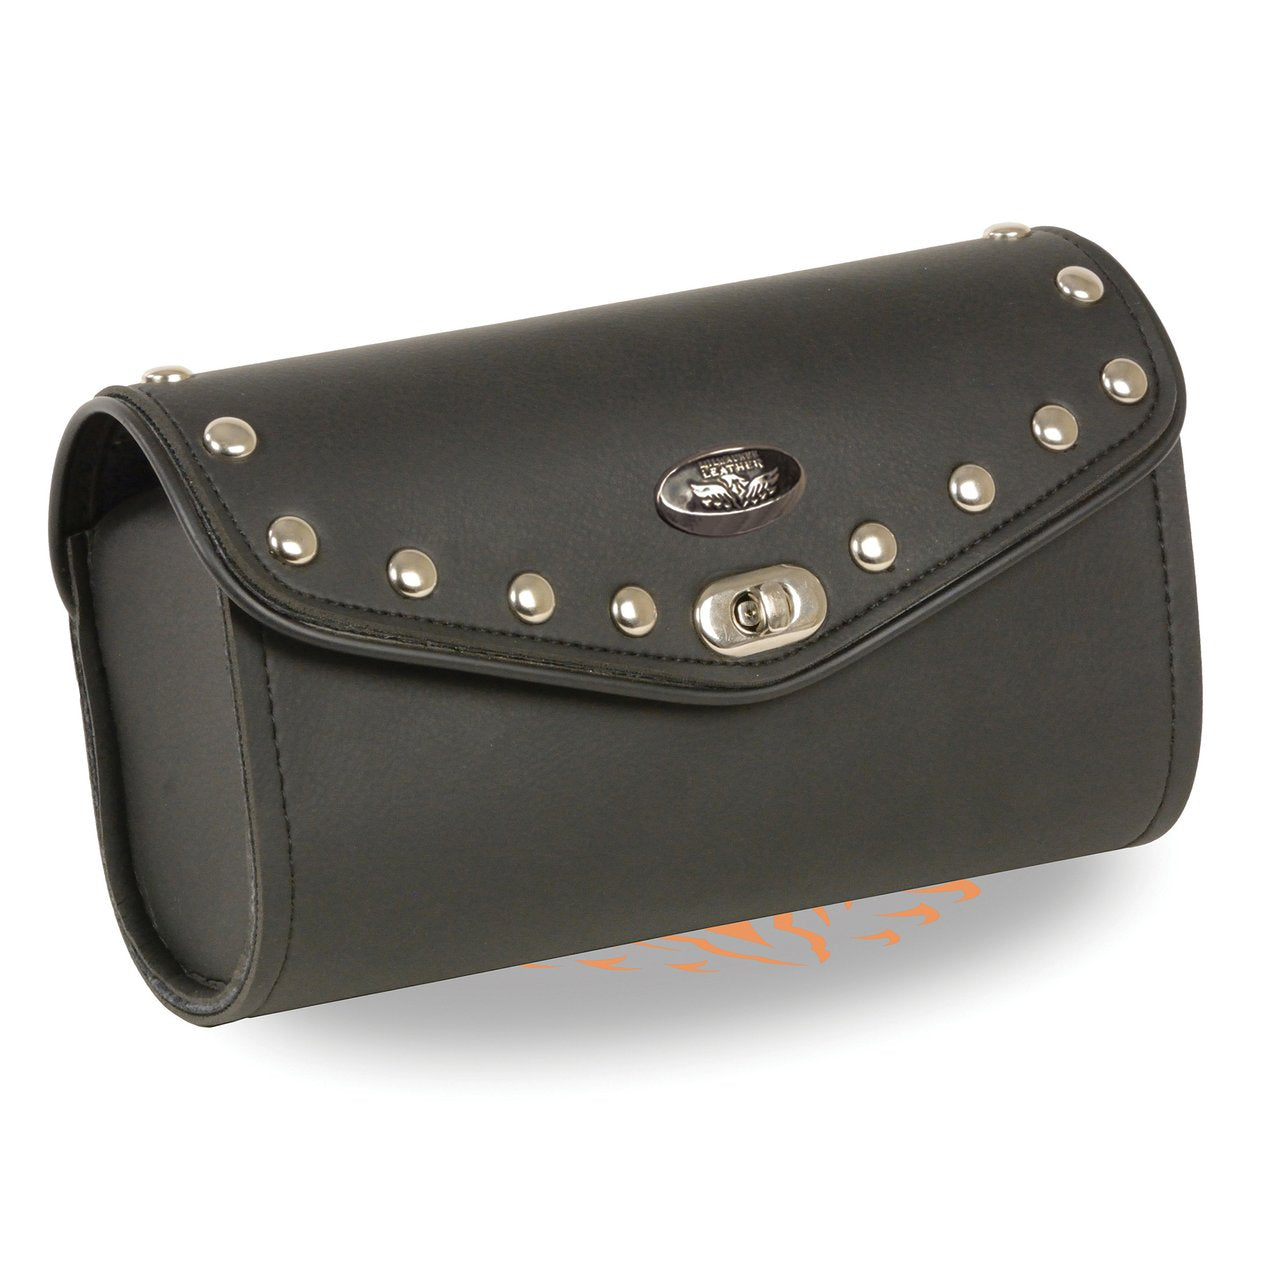 Large PVC Studded Winsheild Bag w/ Turn Clasp (10X4.5X3.25) - HighwayLeather